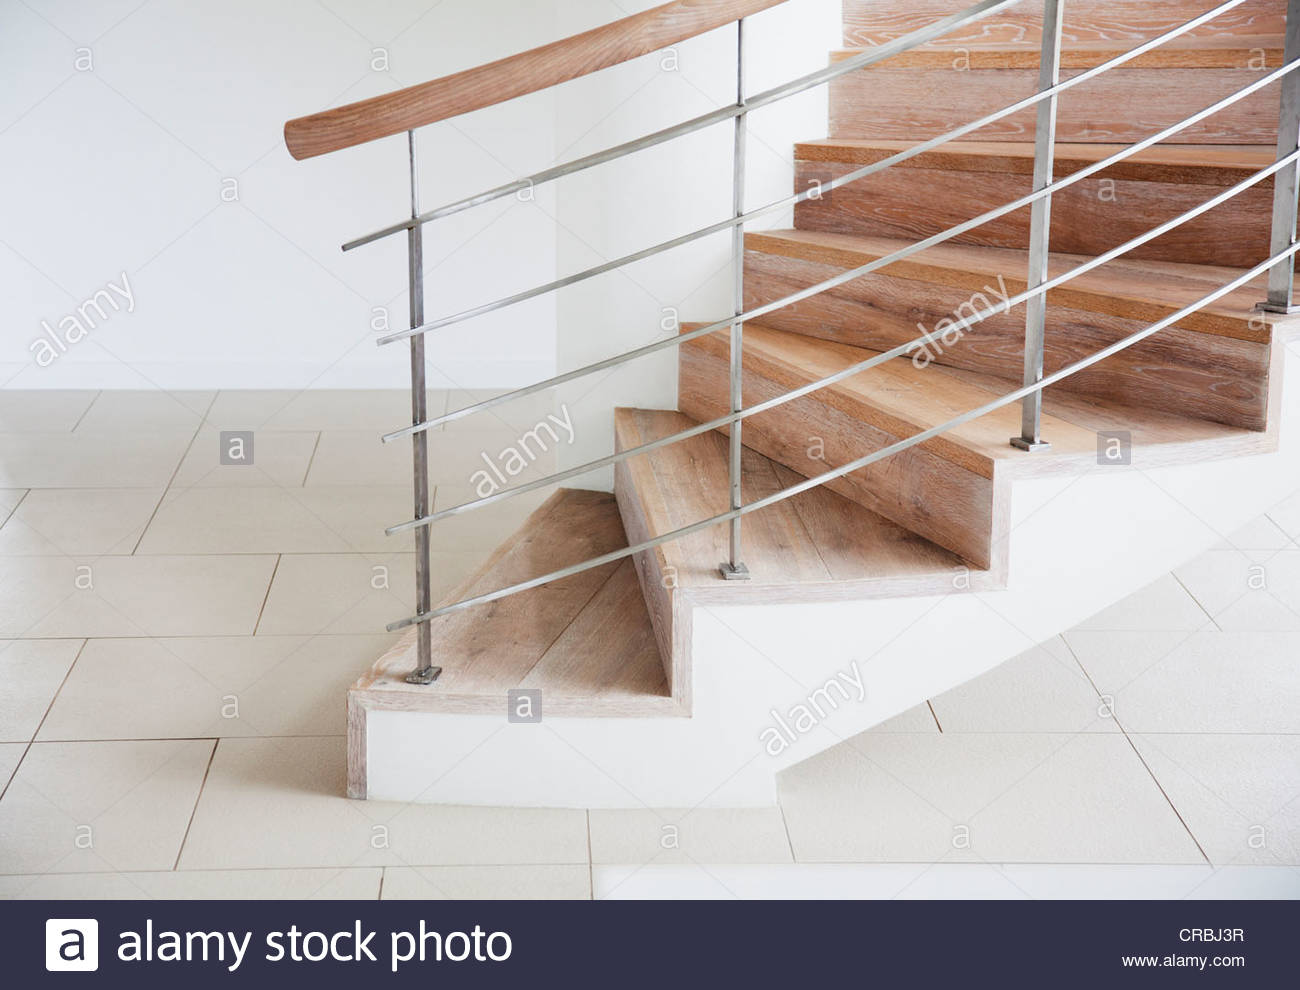 Wooden staircase and railing in modern house Stock Photo Royalty